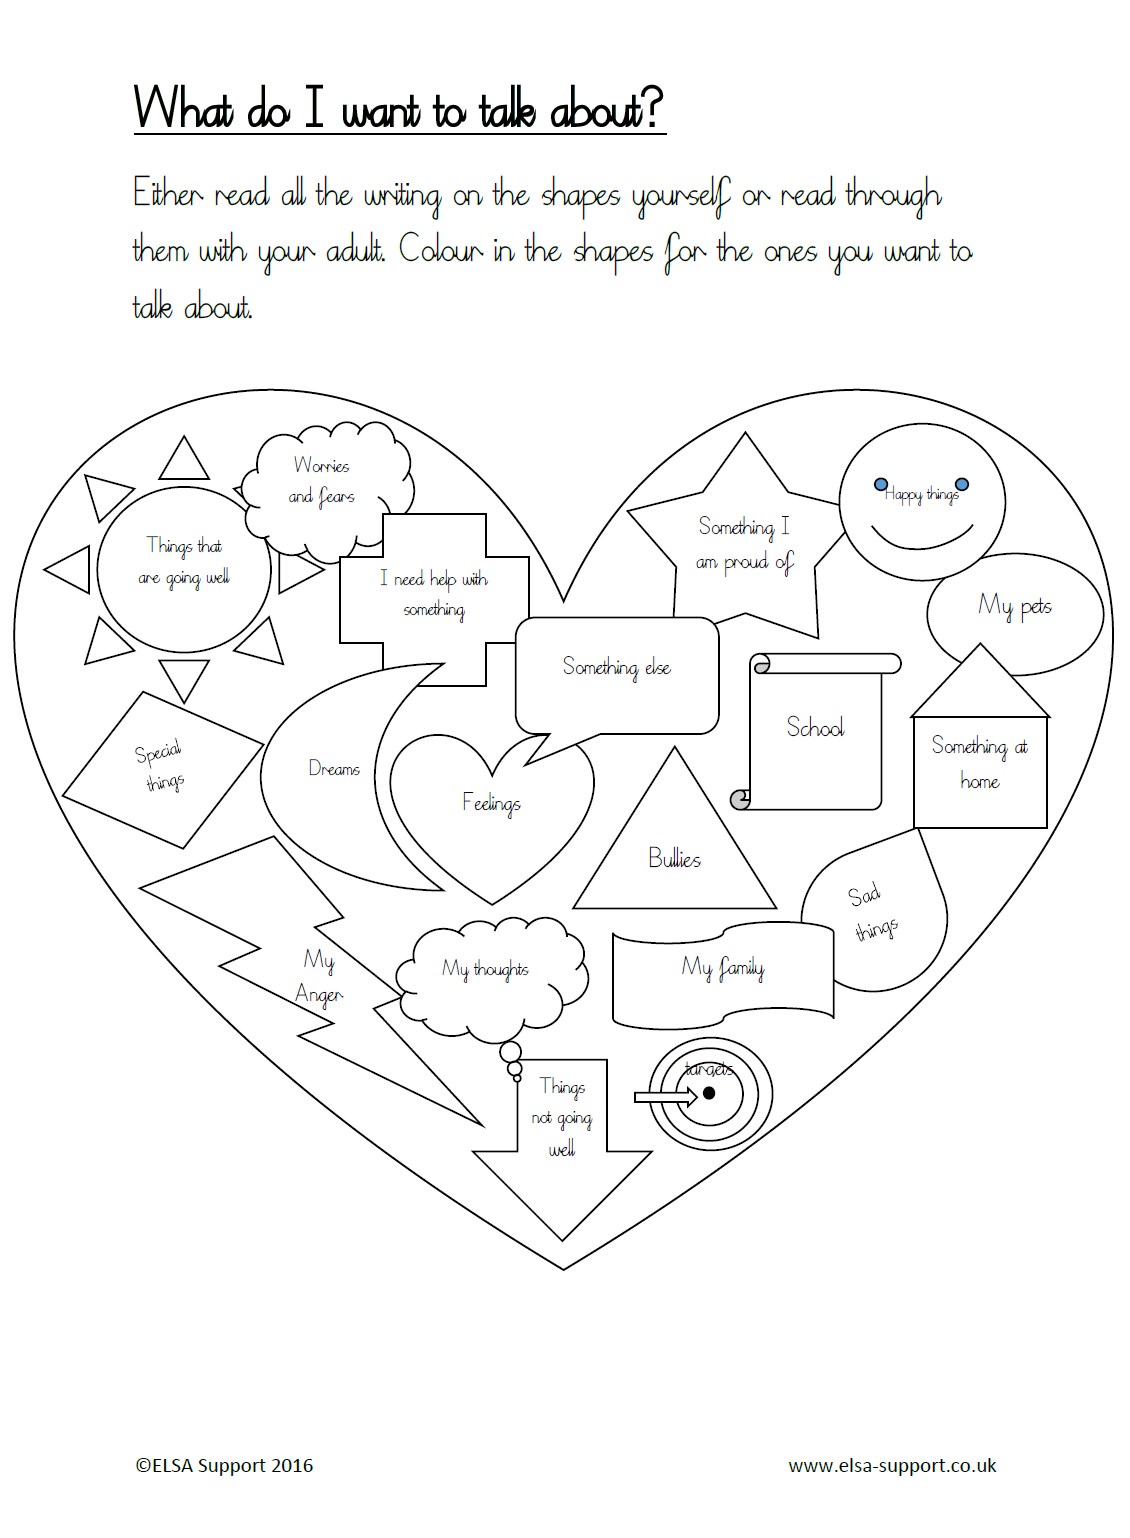 Workbooks wishes and feelings worksheets for children : Counseling worksheets, activities, and games to help children set ...